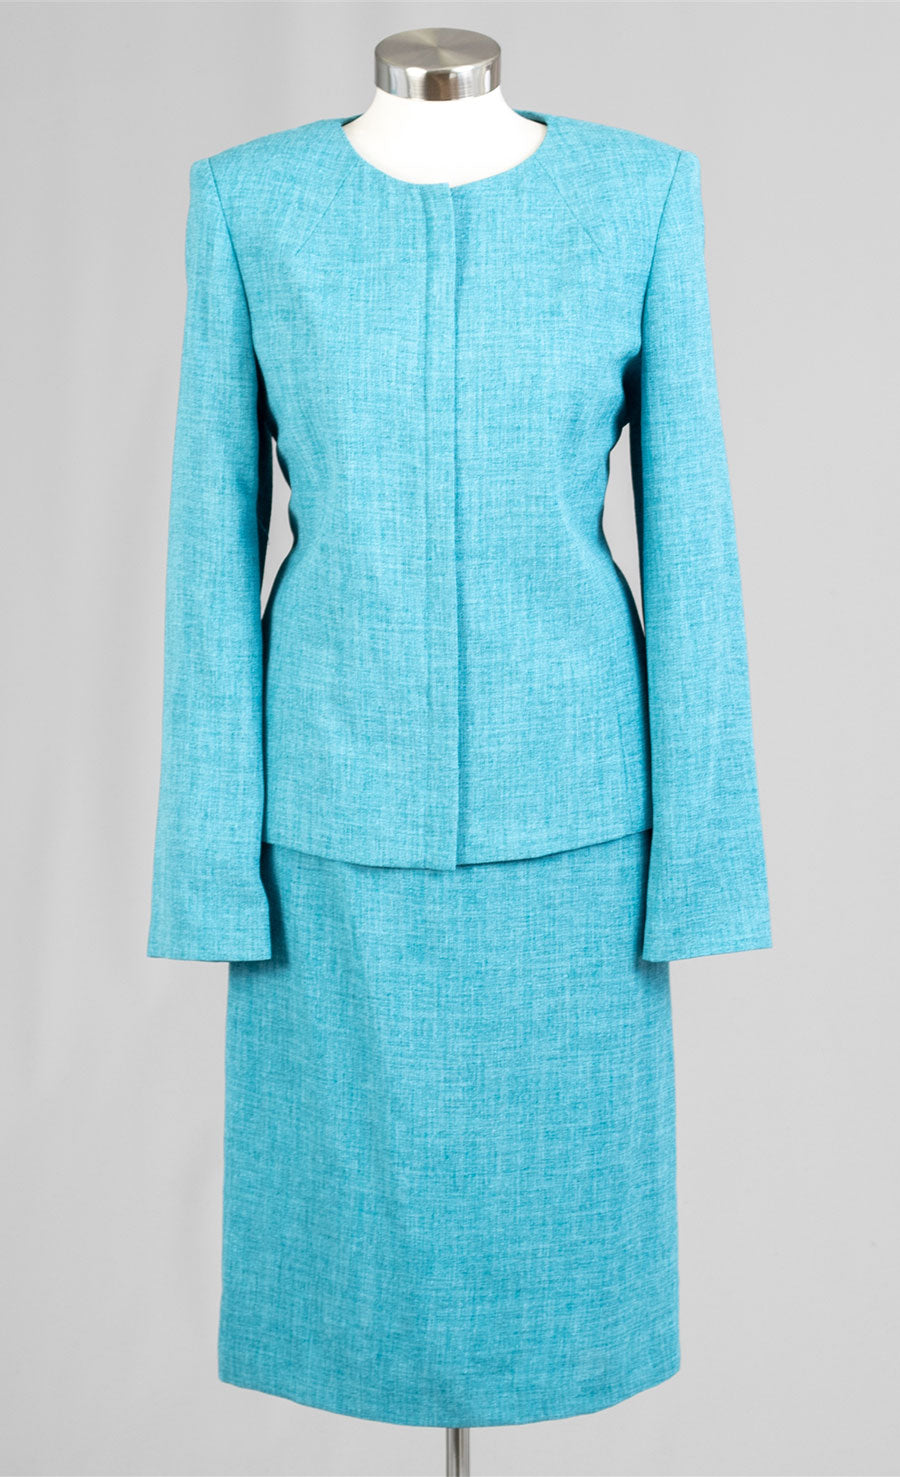 Women Business Skirt Suit 90647-Turquoise - Church Suits For Less